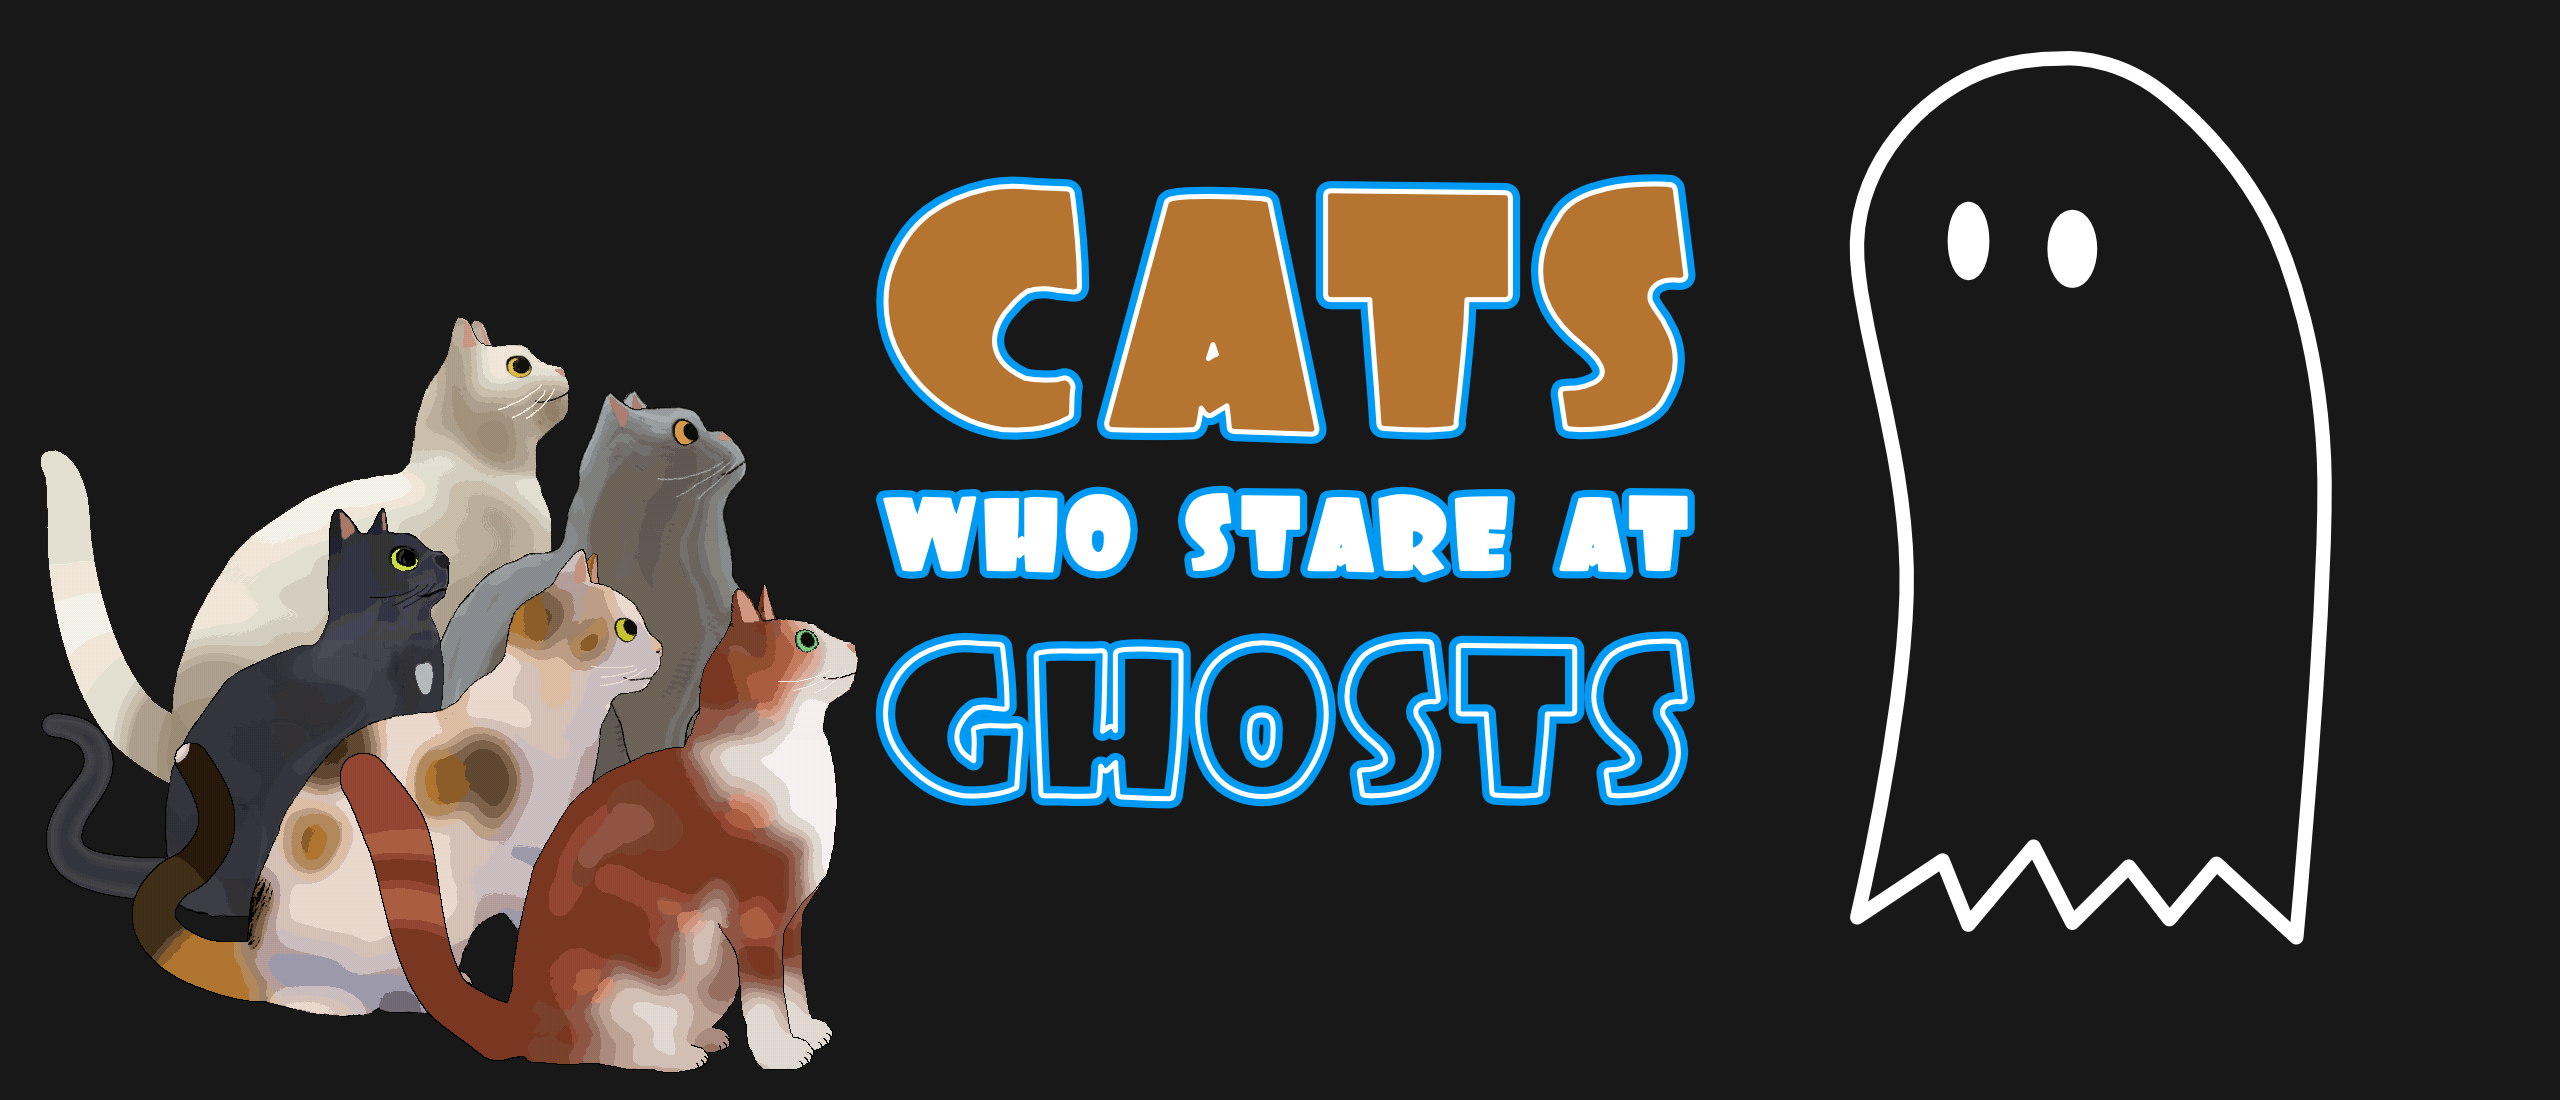 Cats Who Stare At Ghosts